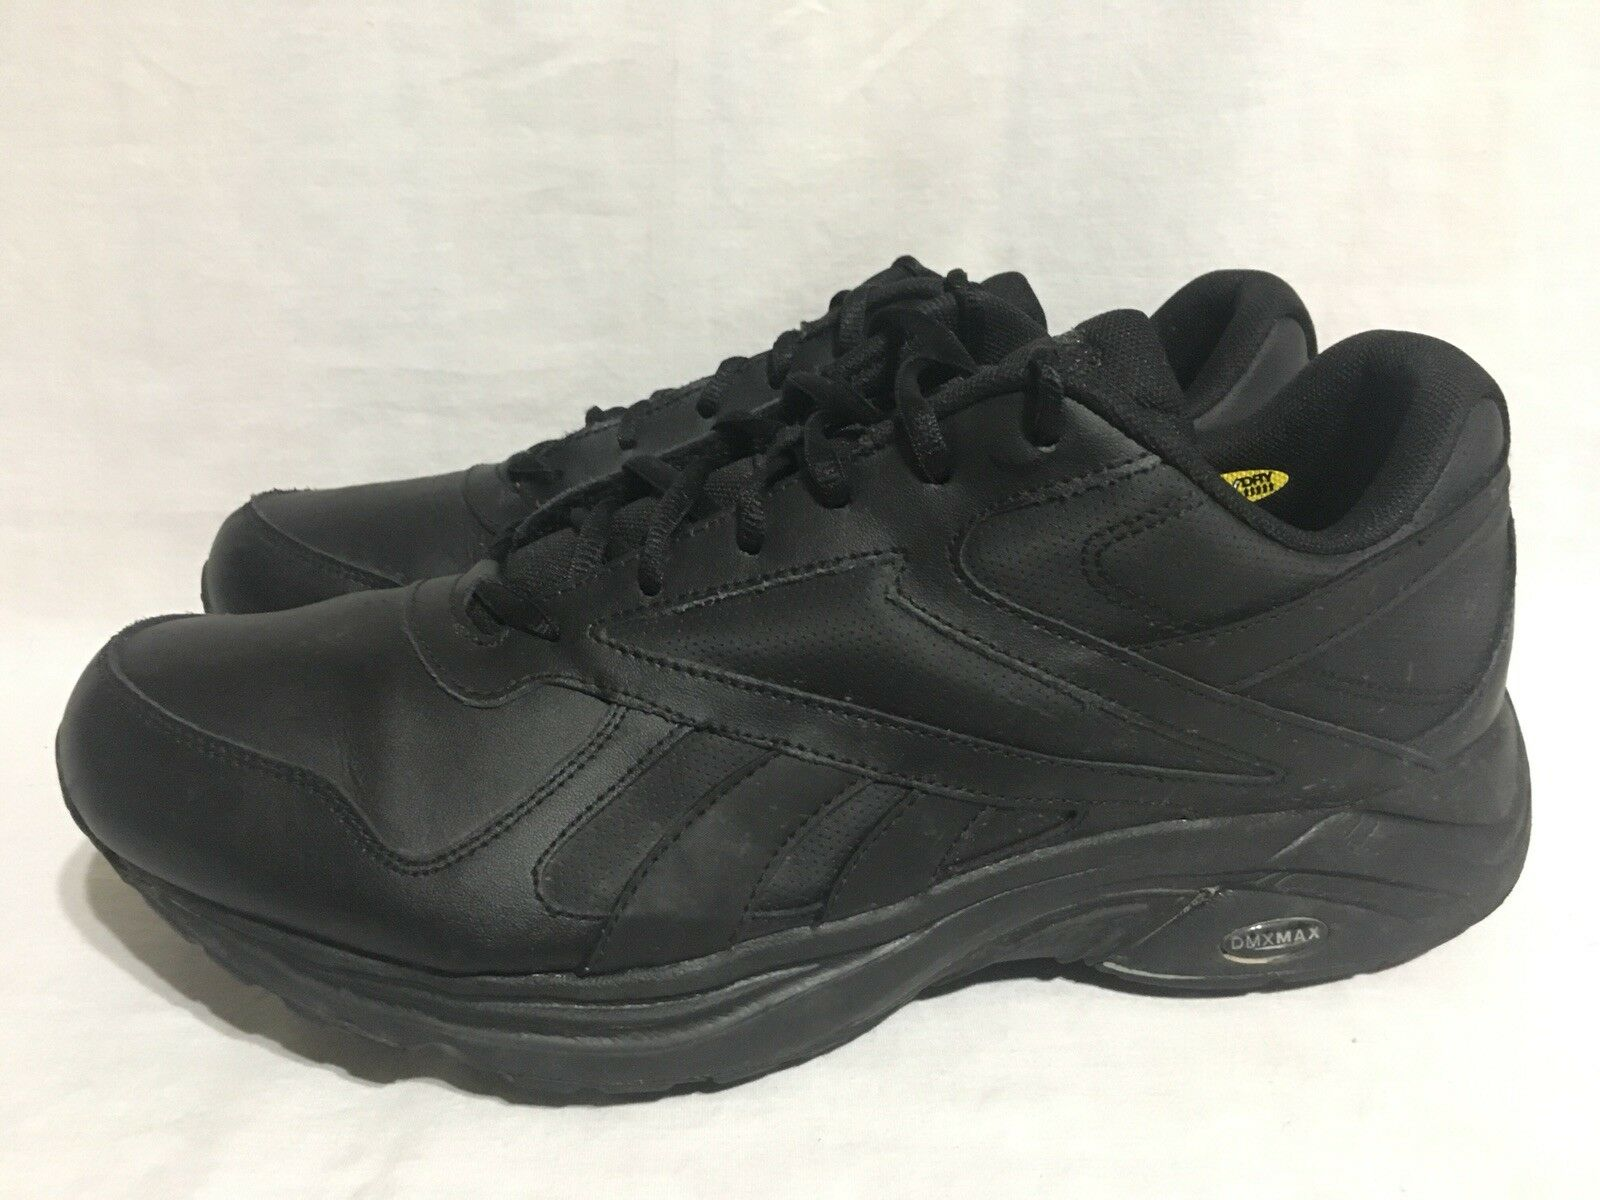 Reebok DMXMAX Black Leather Walking Shoes Athletic Casual 3N-5 Mens 13 wide 4E